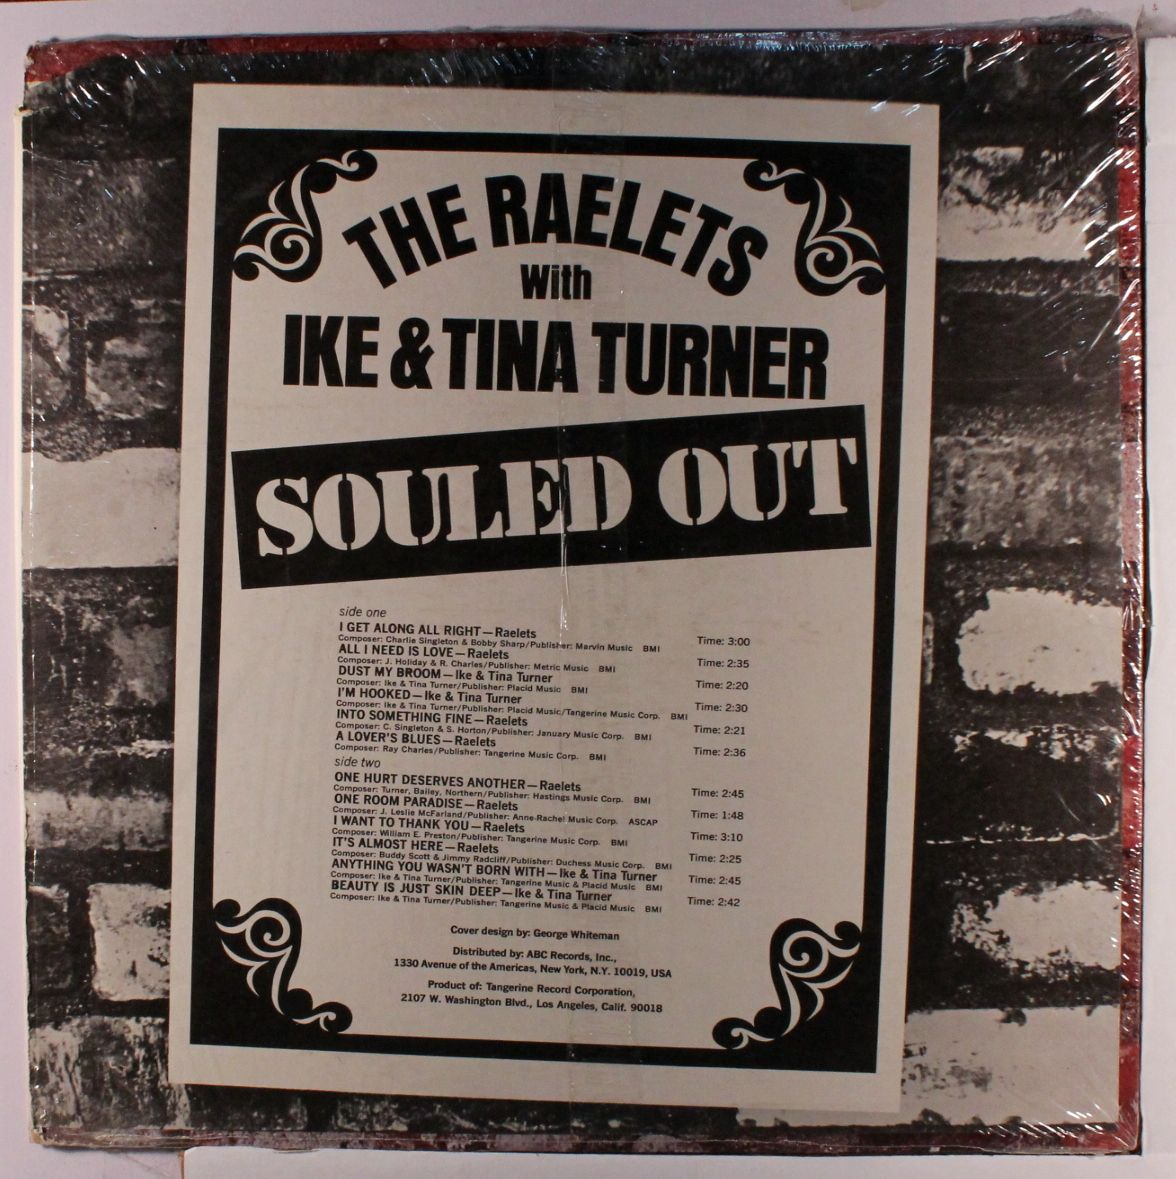 pin by bob stumpel on ray charles raelettes the o ike tina turner revue in 1970 and tangerine released an odd album featuring both acts both doing their own things souled out in 1971 ray charles